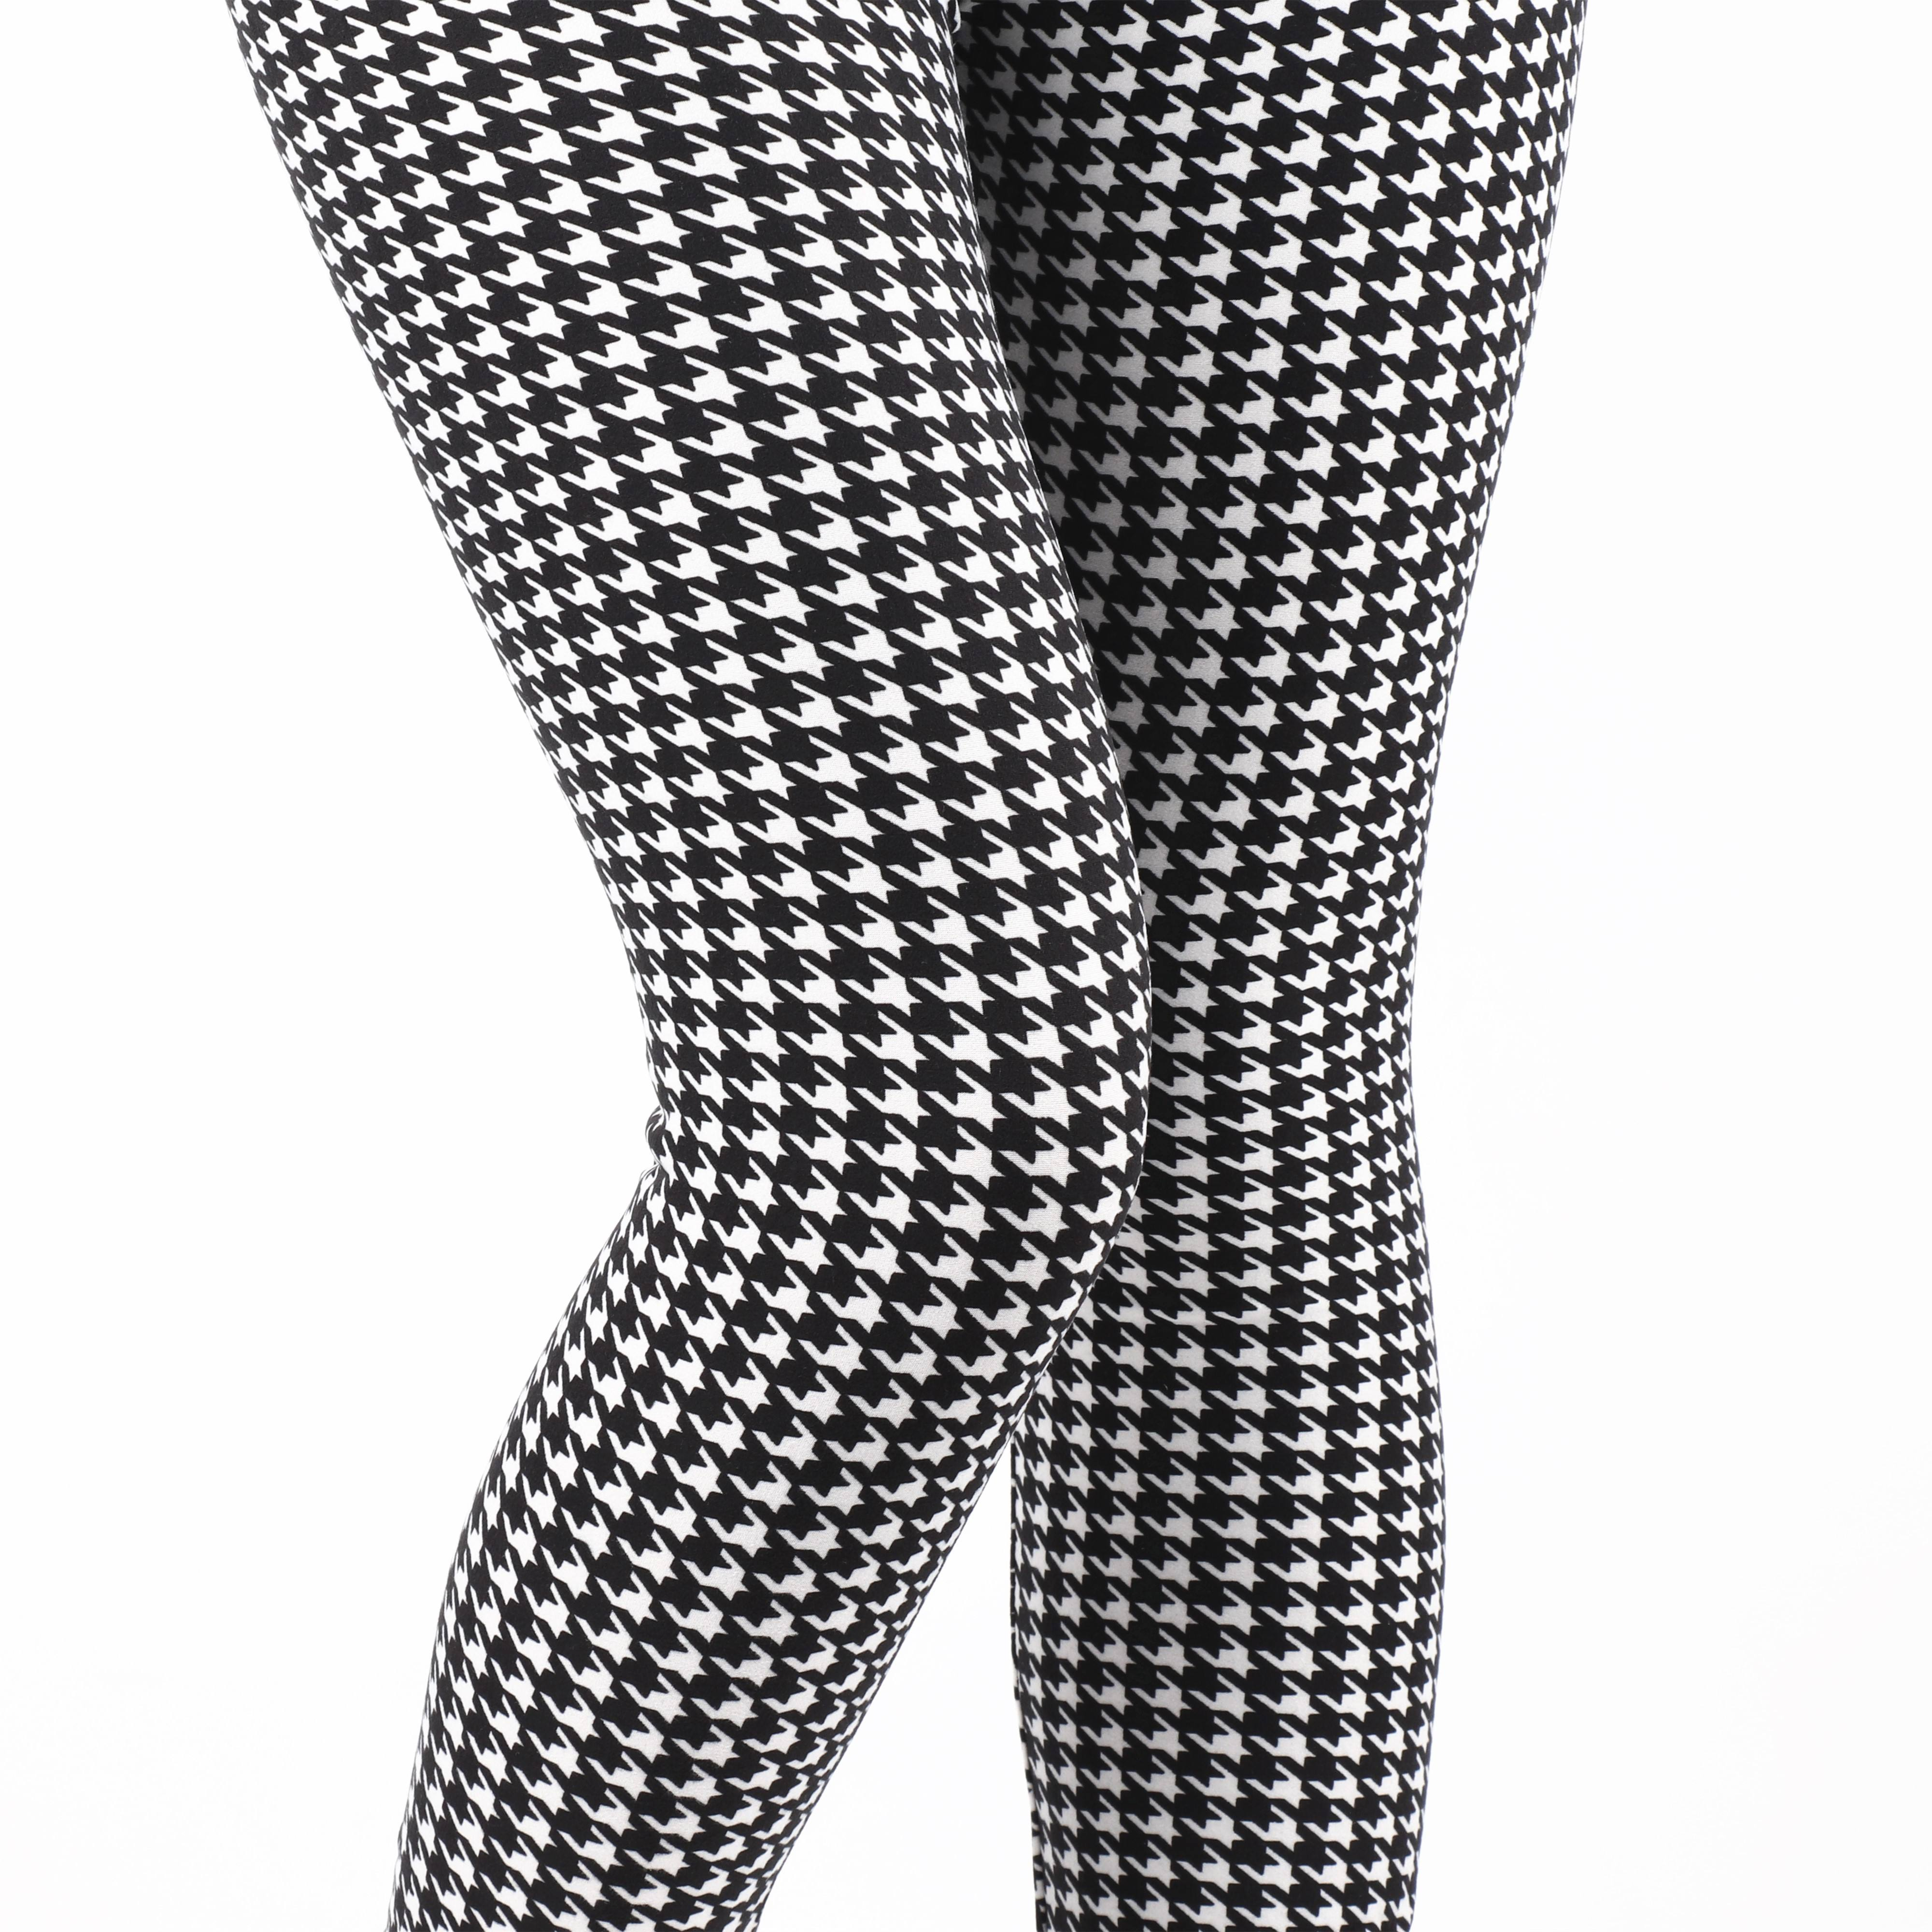 Custom Digital Print Yoga Band Velvet Quality Women Girls Houndstooth Design Skin Buttery Soft Leggings Wholesale